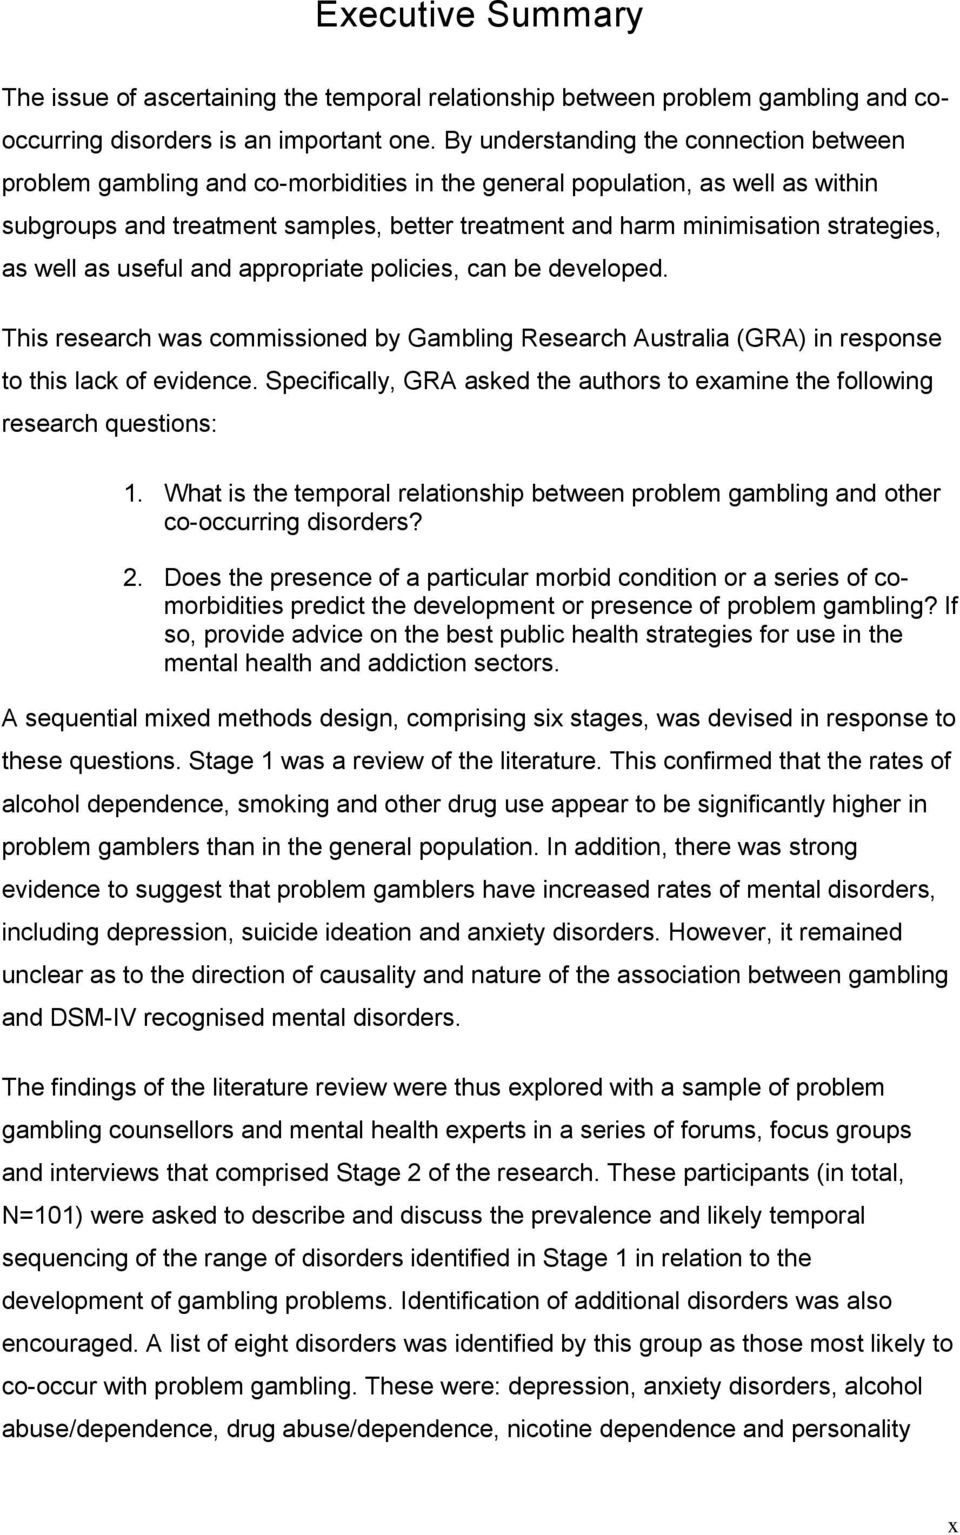 strategies, as well as useful and appropriate policies, can be developed. This research was commissioned by Gambling Research Australia (GRA) in response to this lack of evidence.